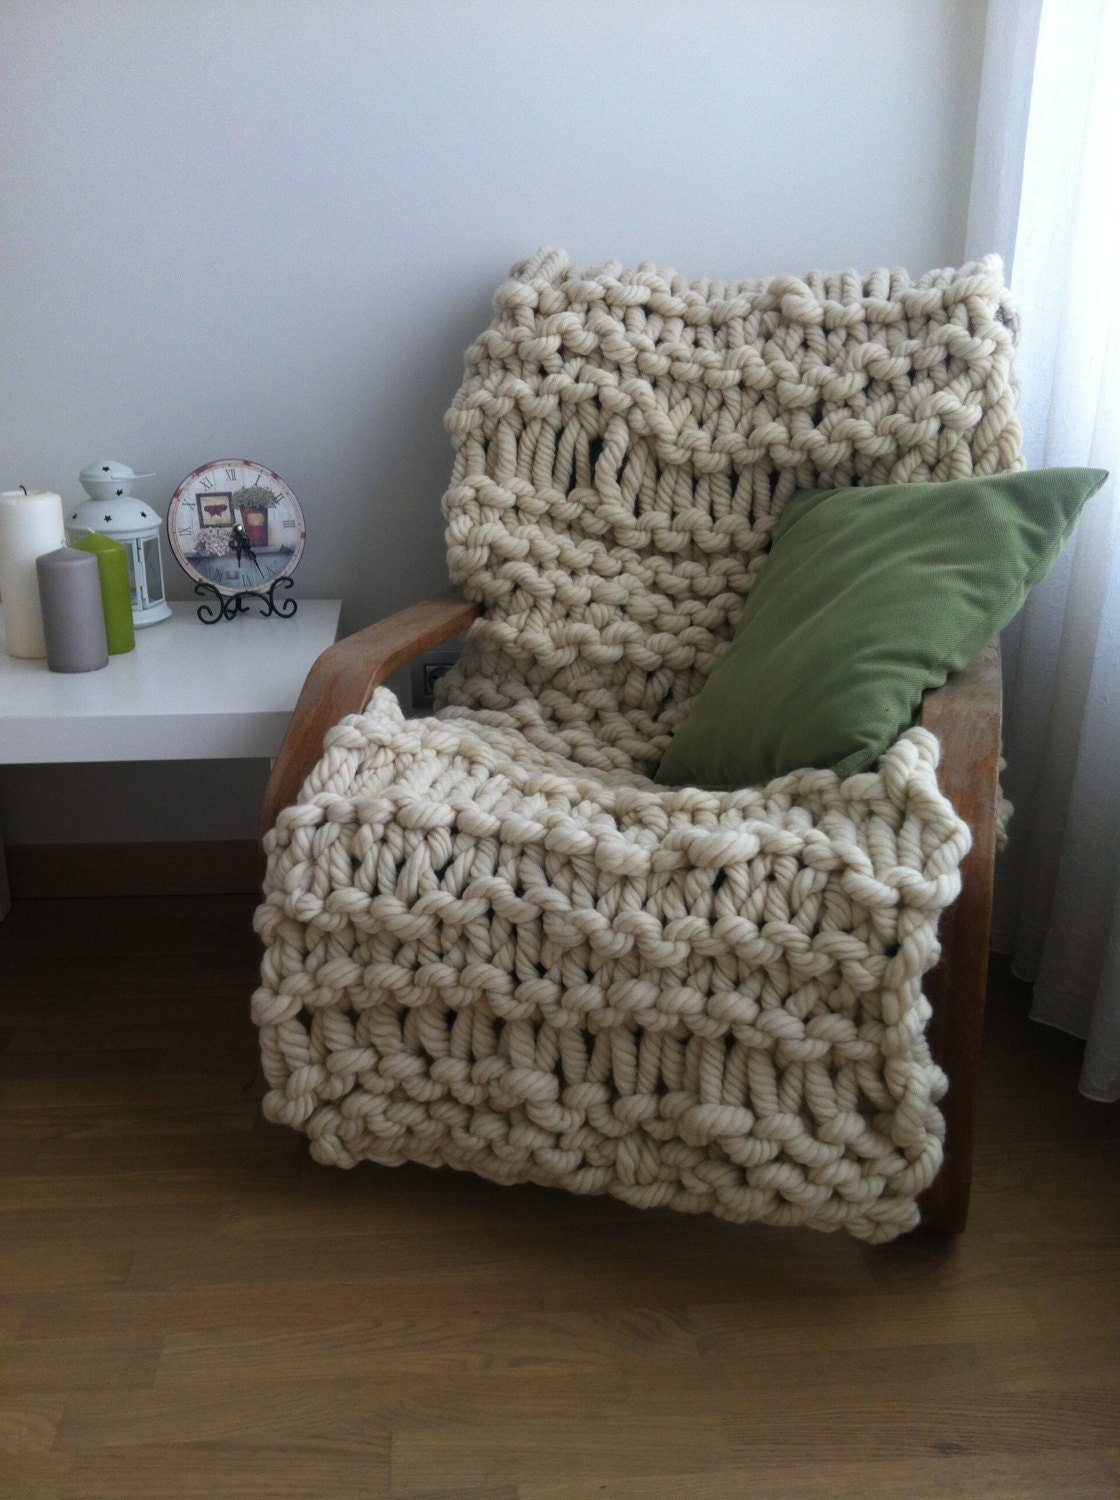 Super Chunky Knit Blanket Pattern : Super chunky knit blanket 24x59 by SimplyLifeHandmade on Etsy